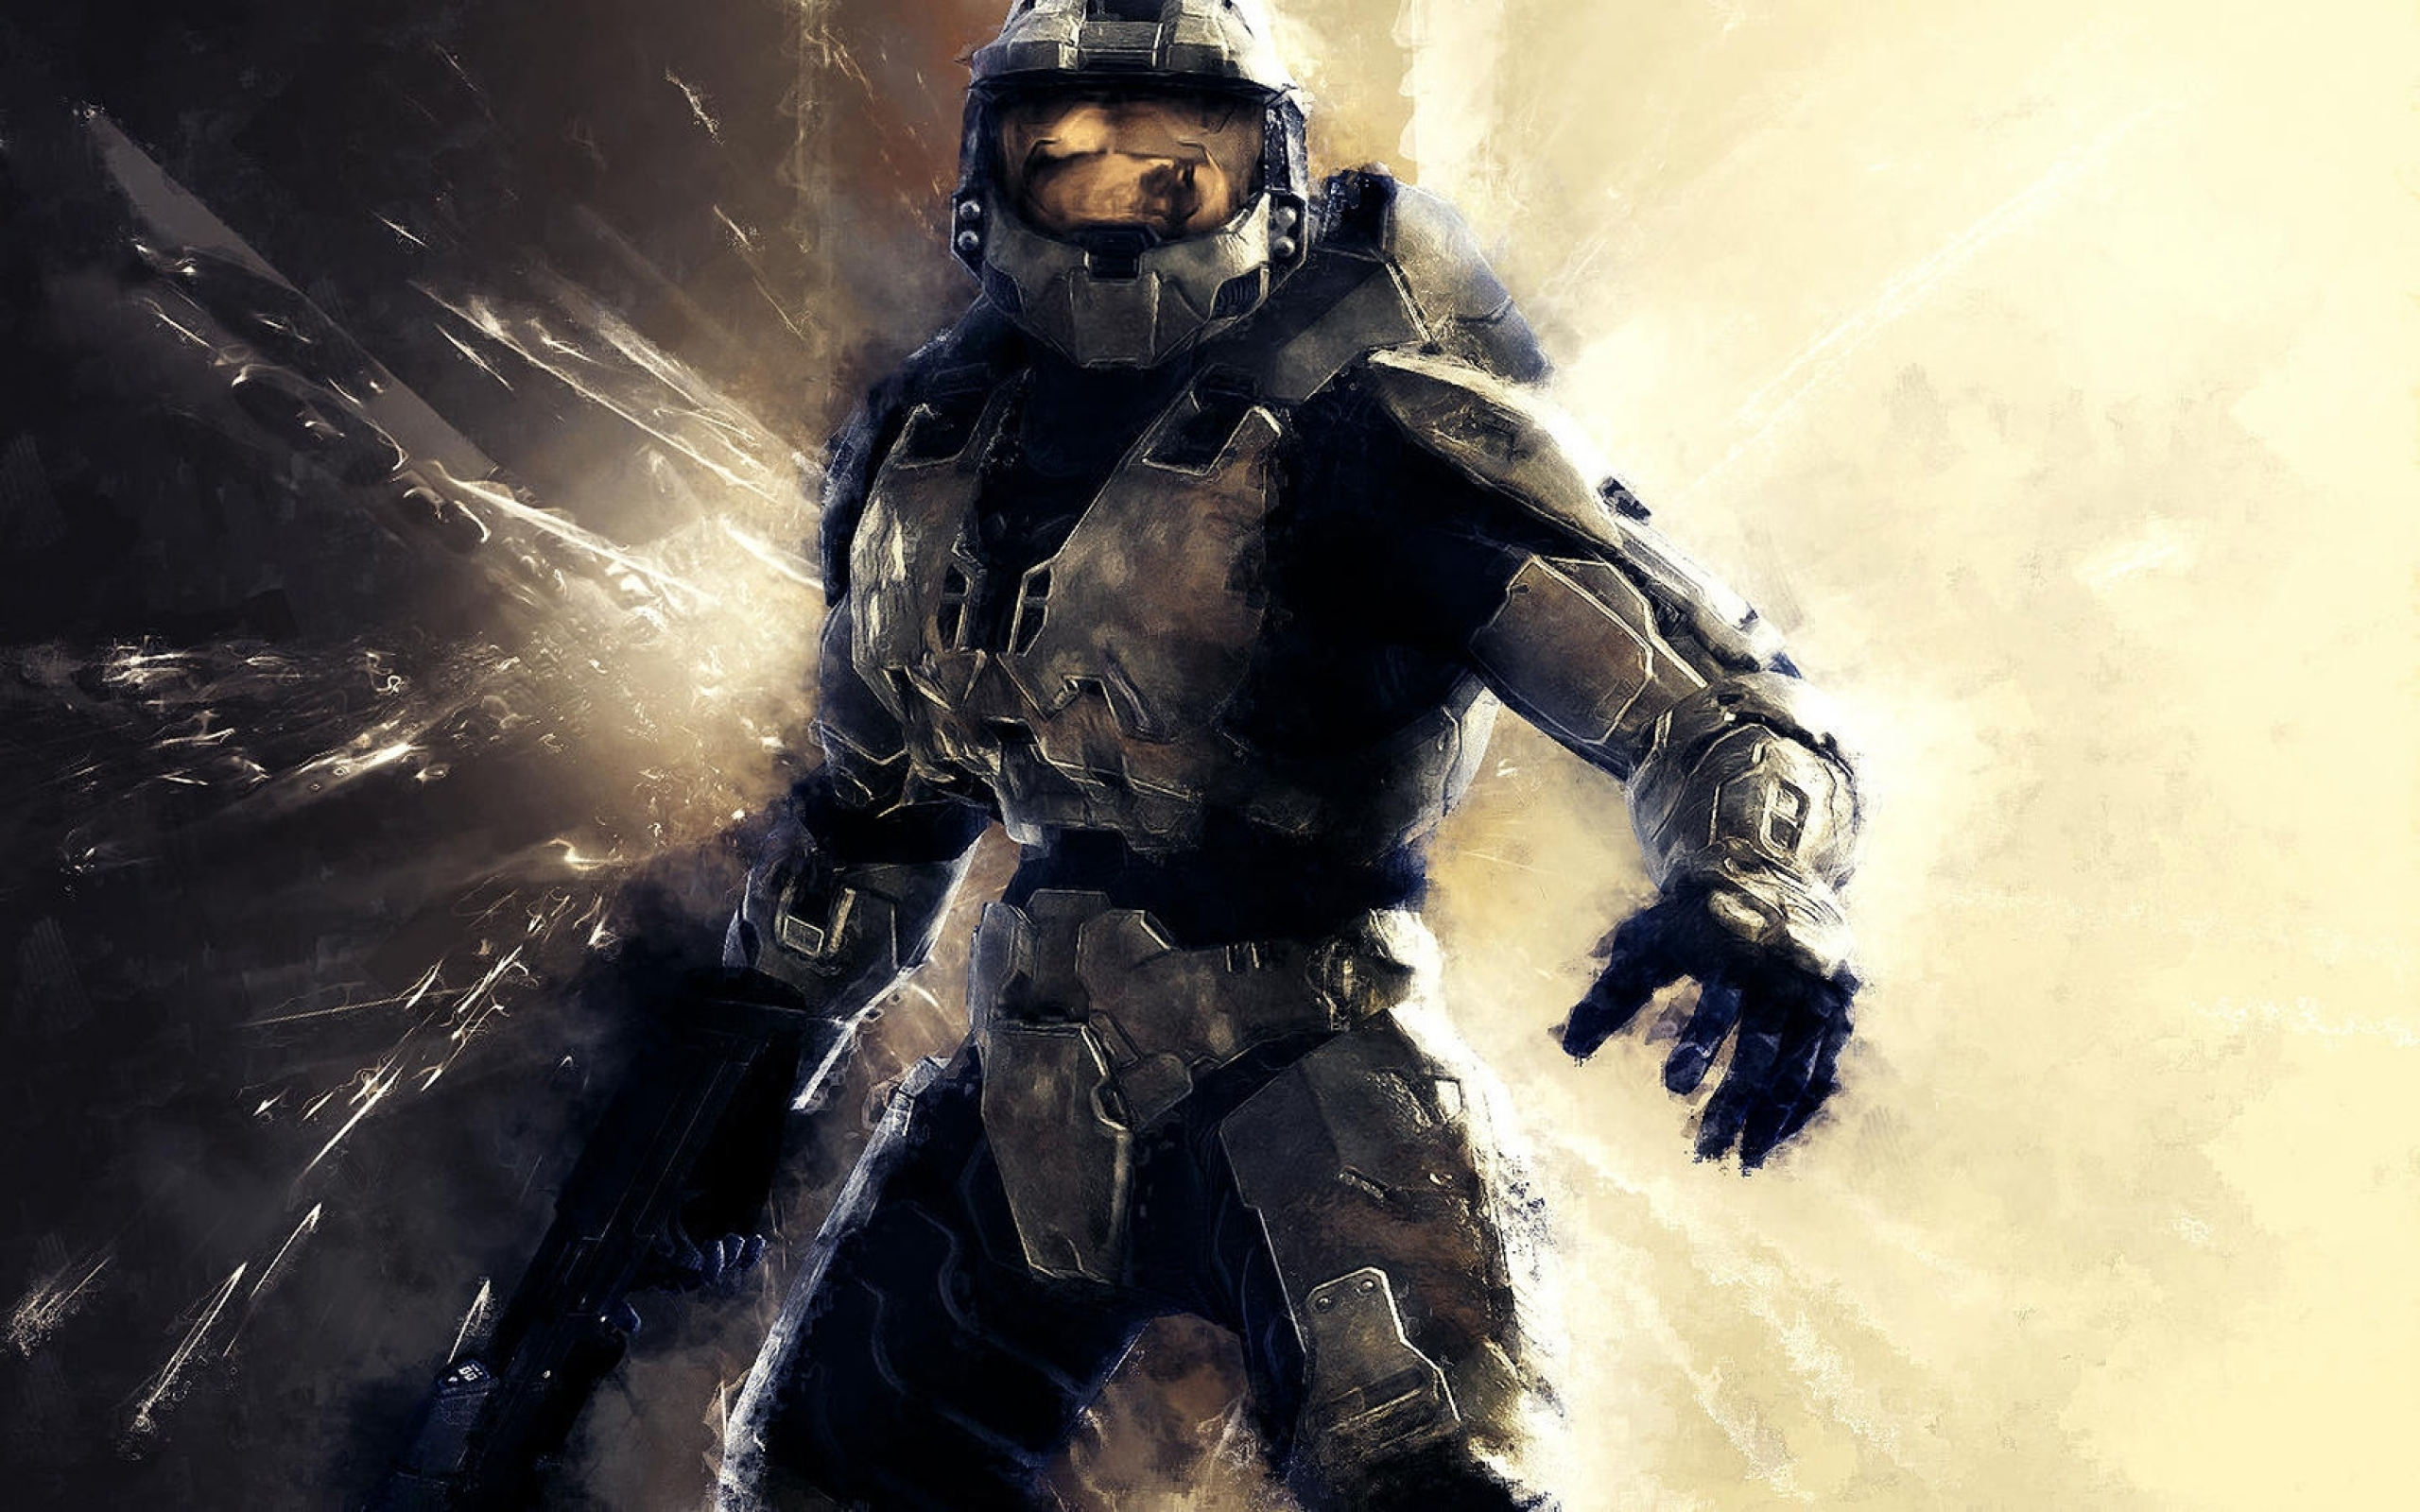 Halo 4 full hd wallpaper and background image 2560x1600 id381237 video game halo 4 wallpaper voltagebd Image collections